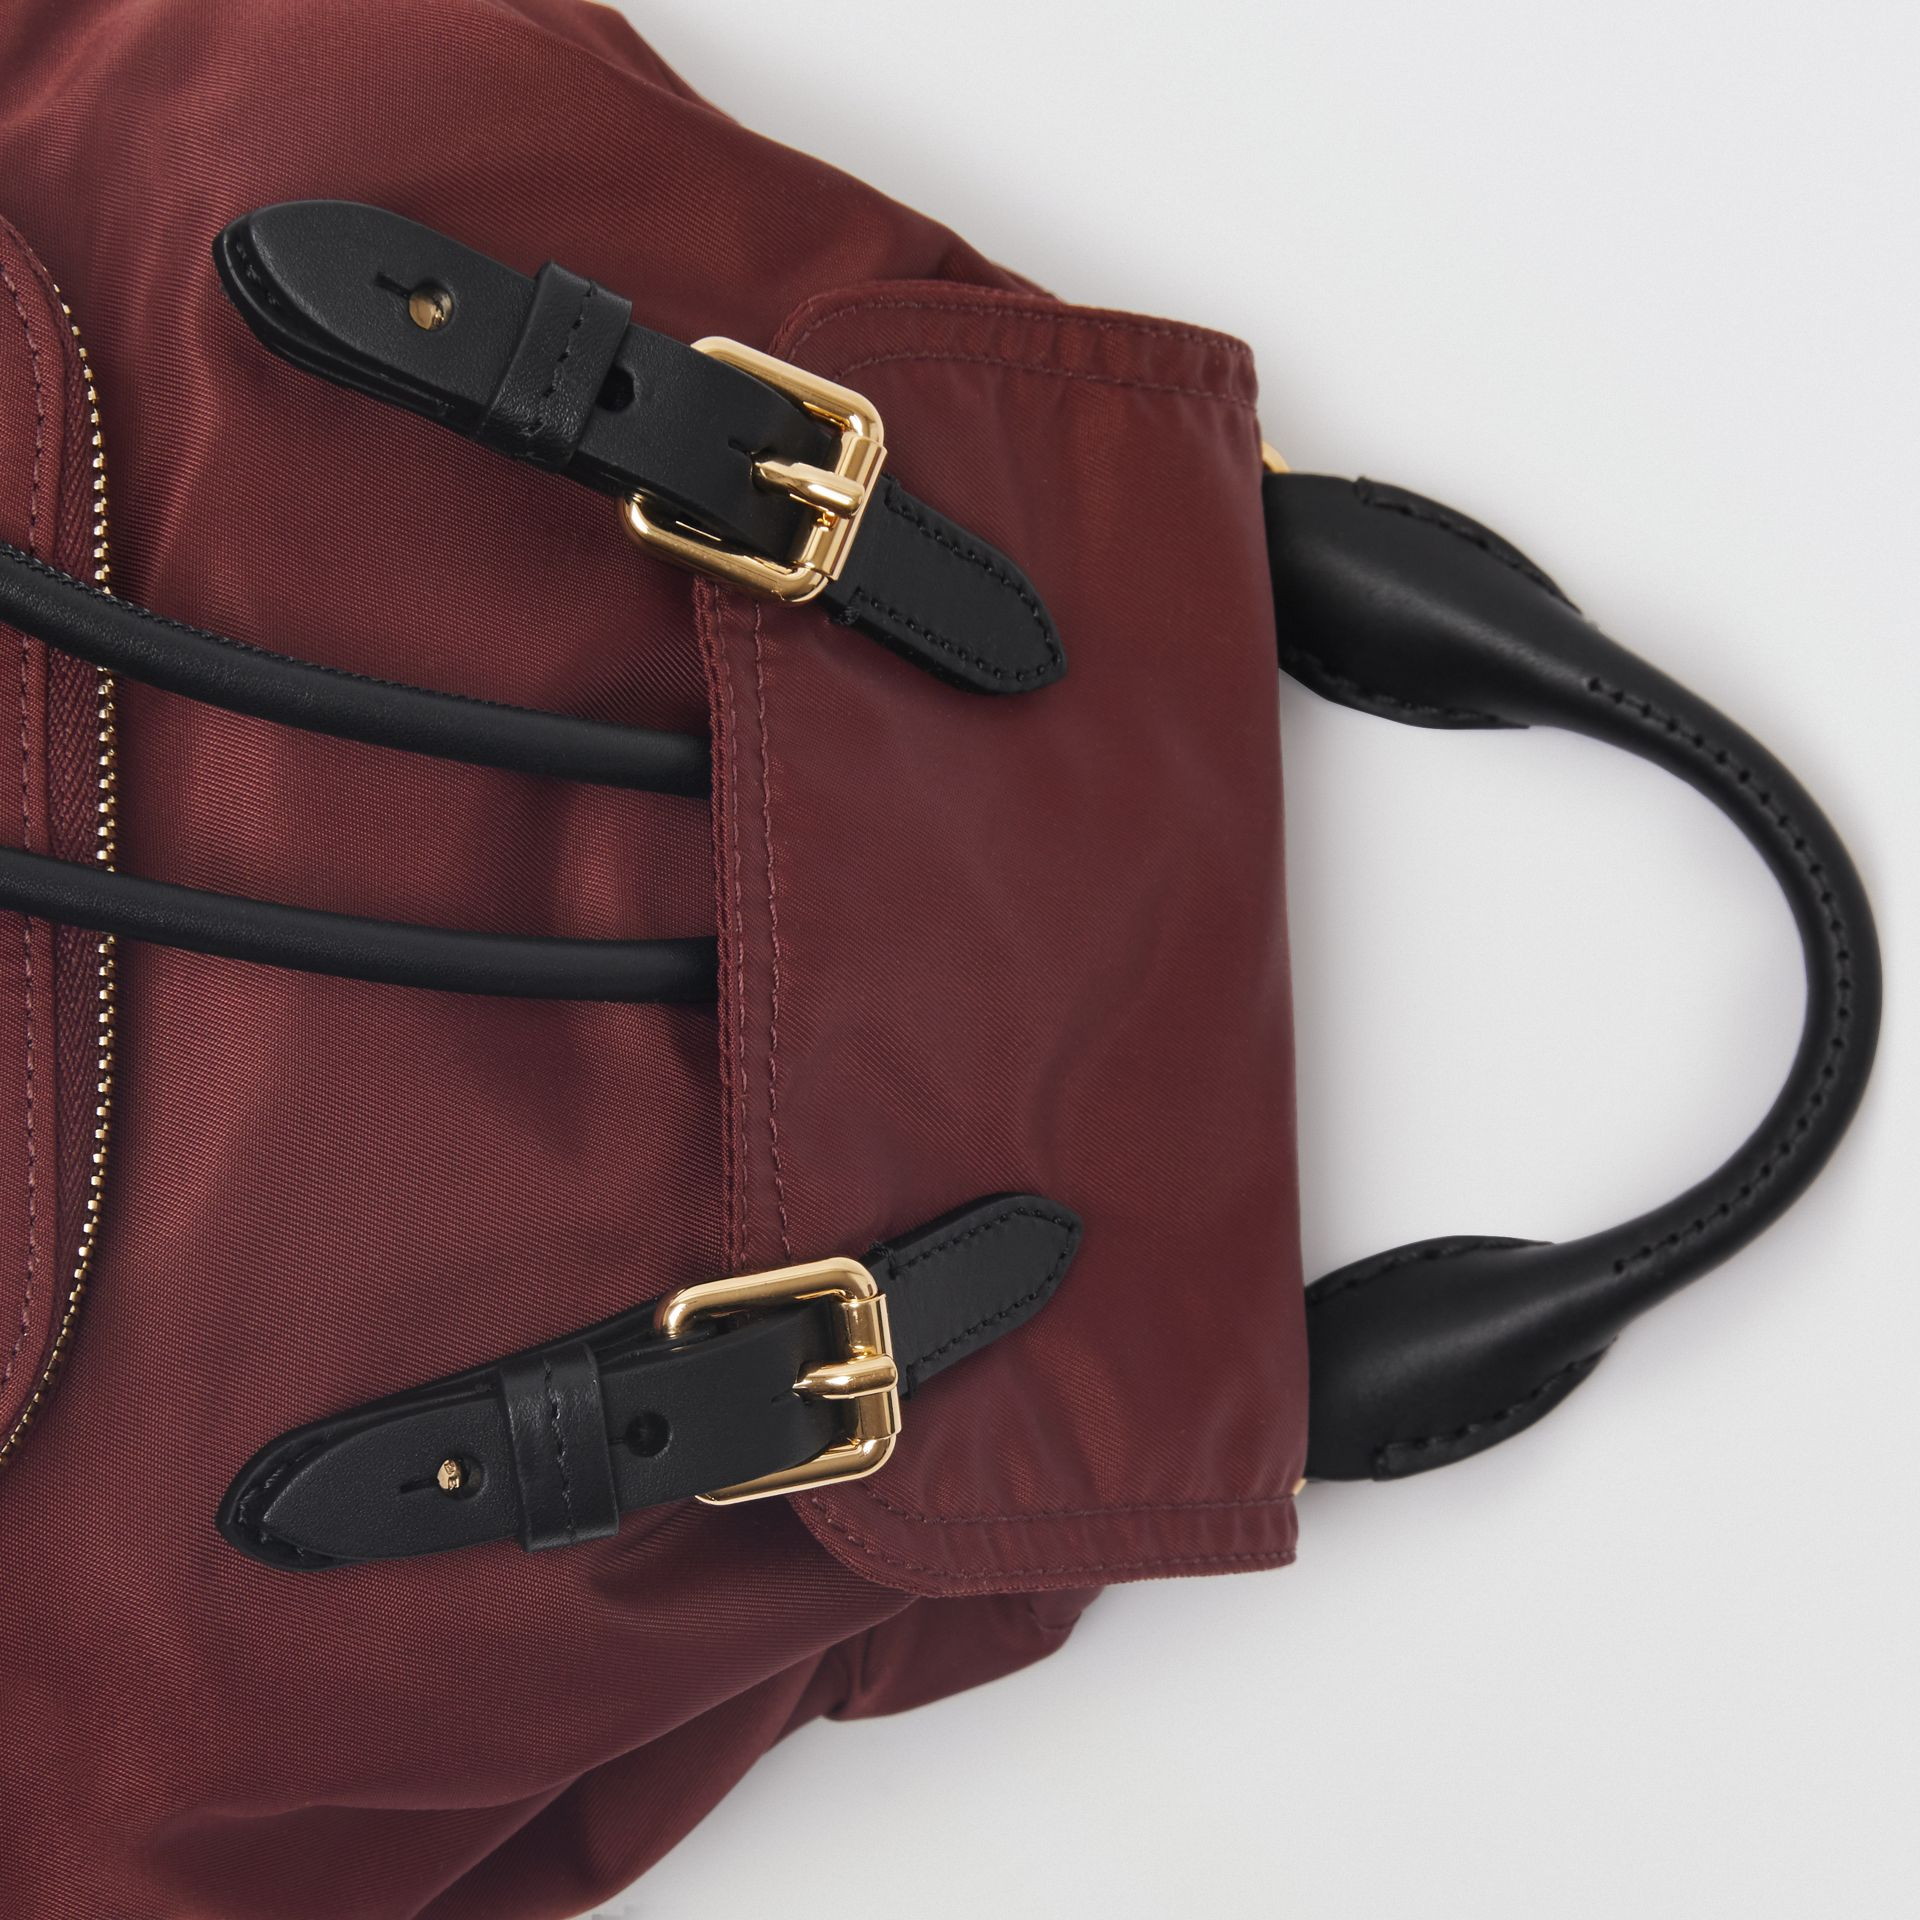 The Small Crossbody Rucksack in Nylon in Burgundy Red - Women | Burberry Australia - gallery image 1